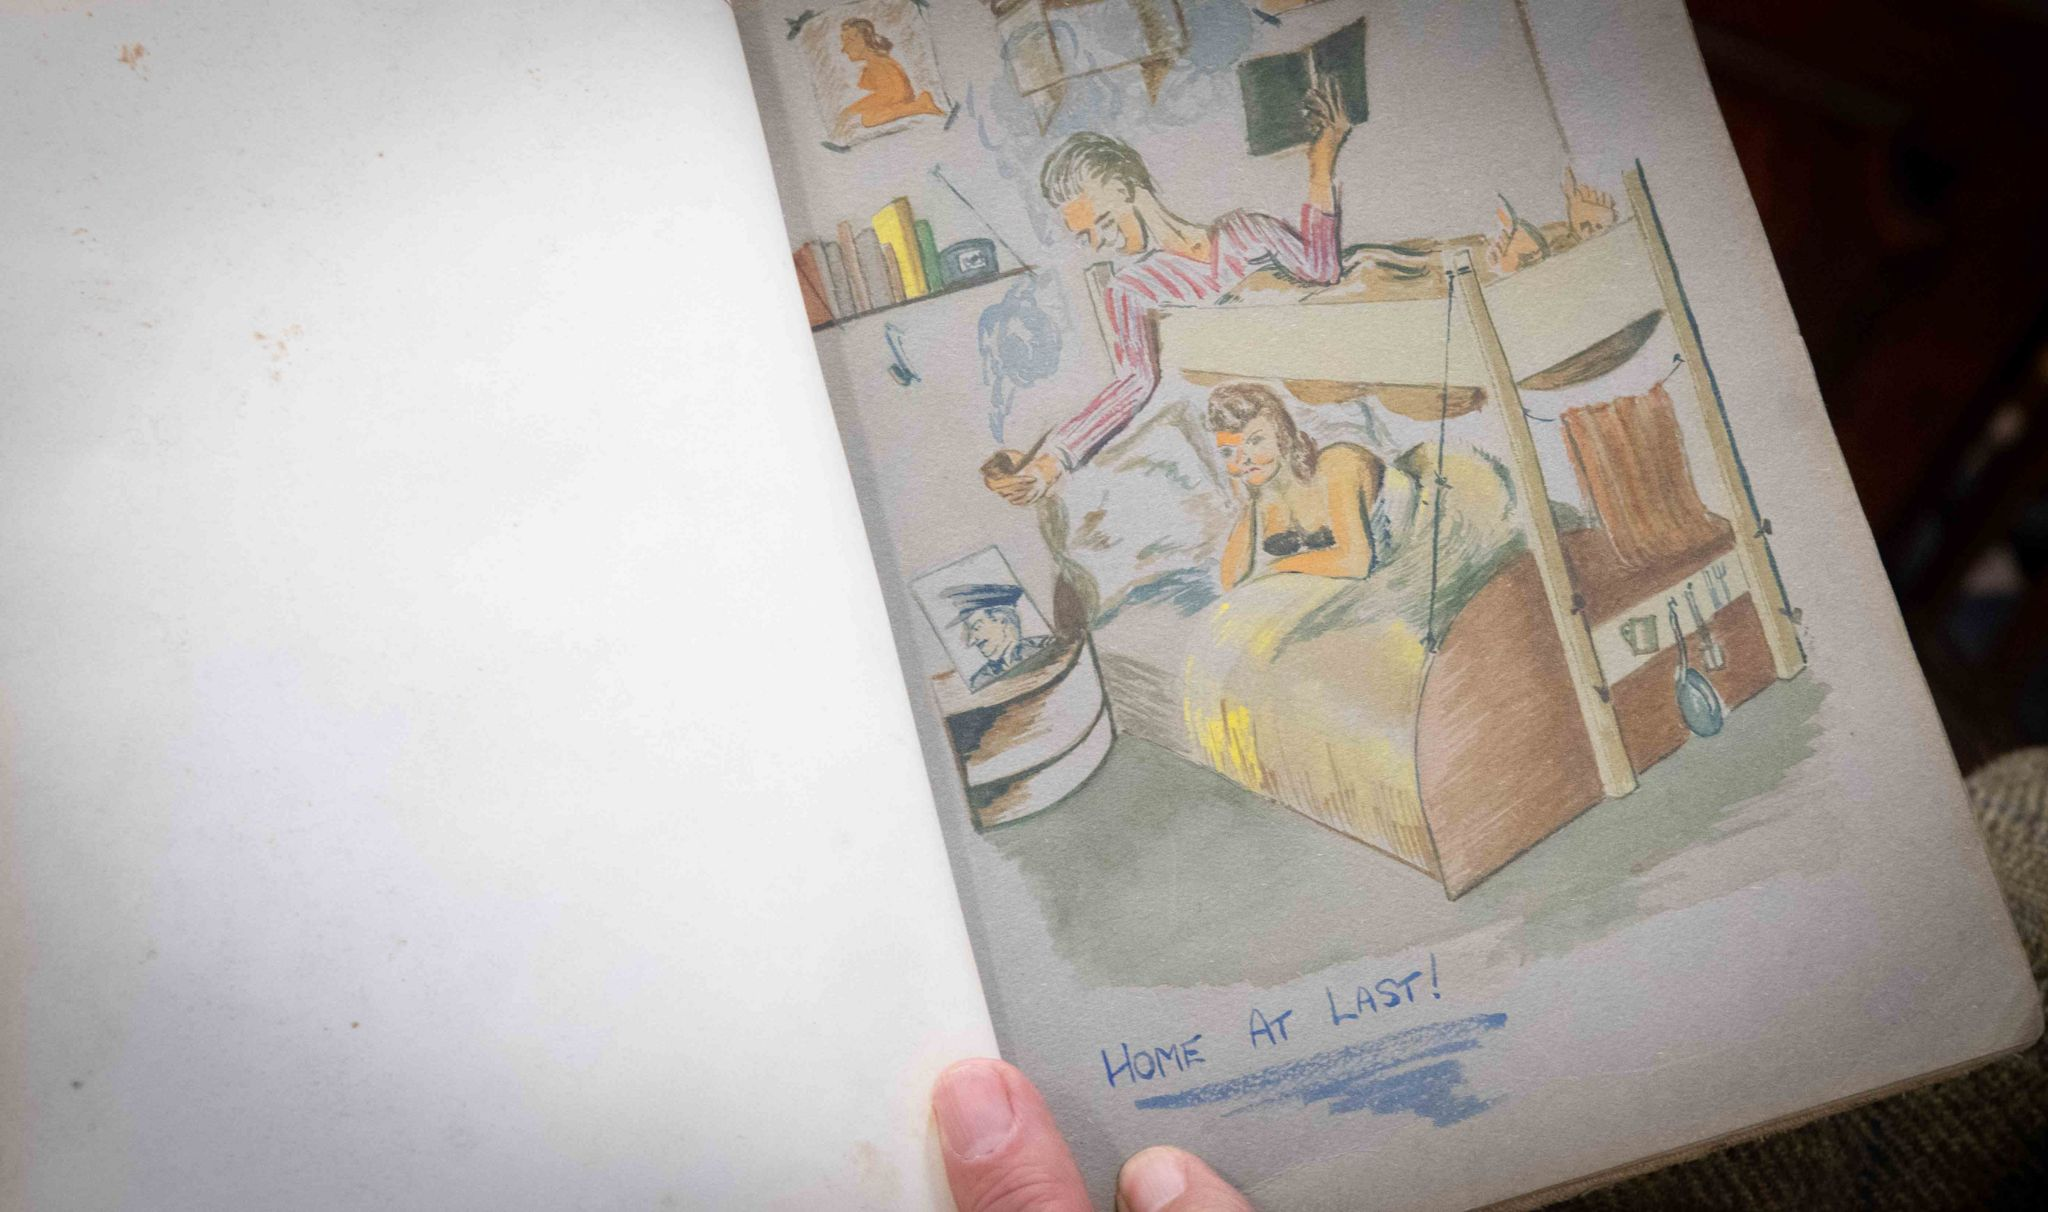 A drawing in the journal